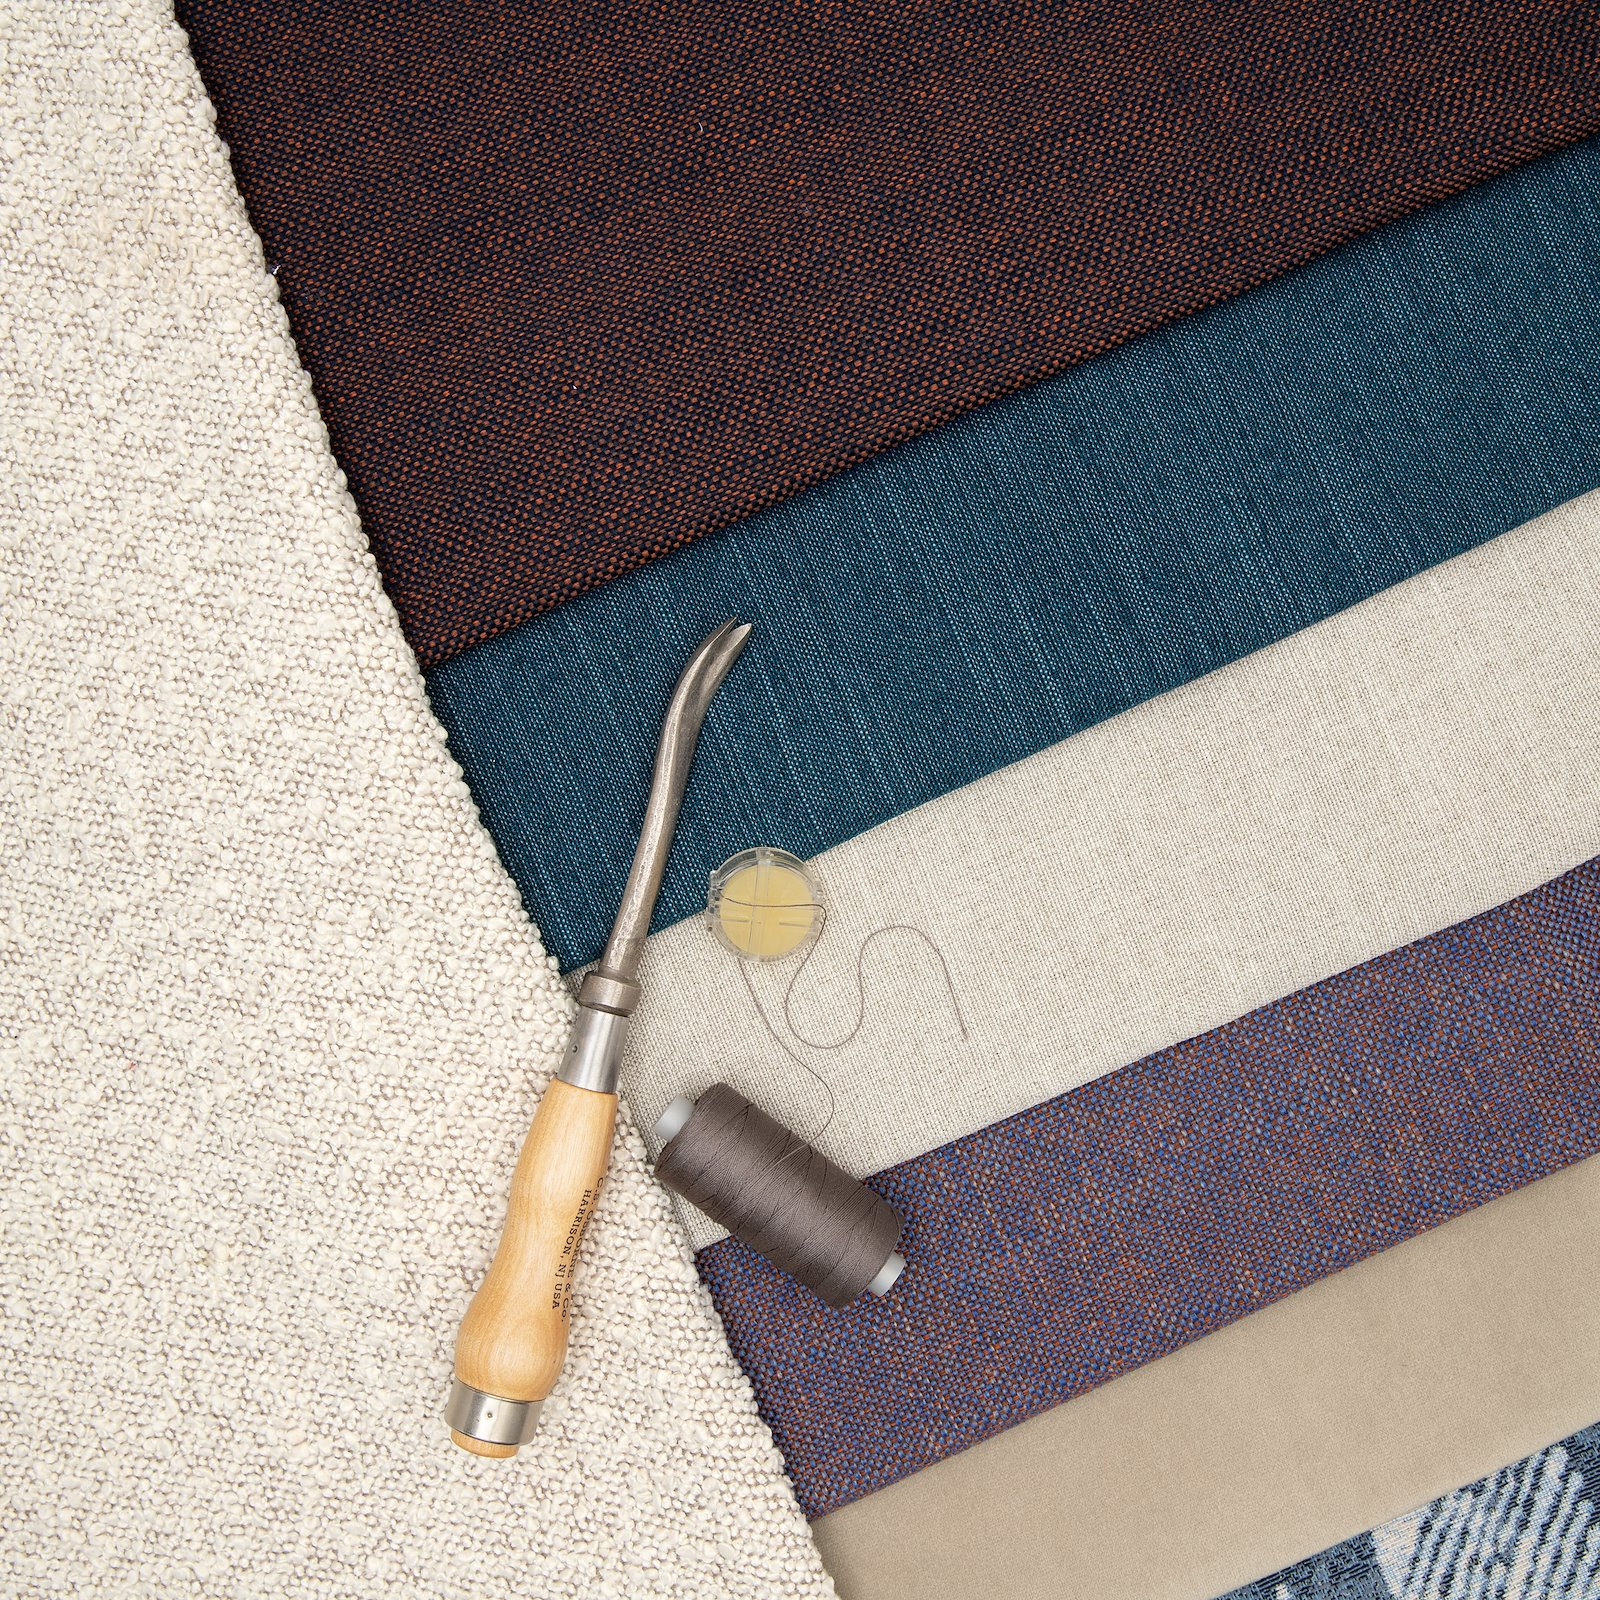 Upholstery fabric navy/chestnut brown 824161_824157_824153_824152_824156_824158_bundle